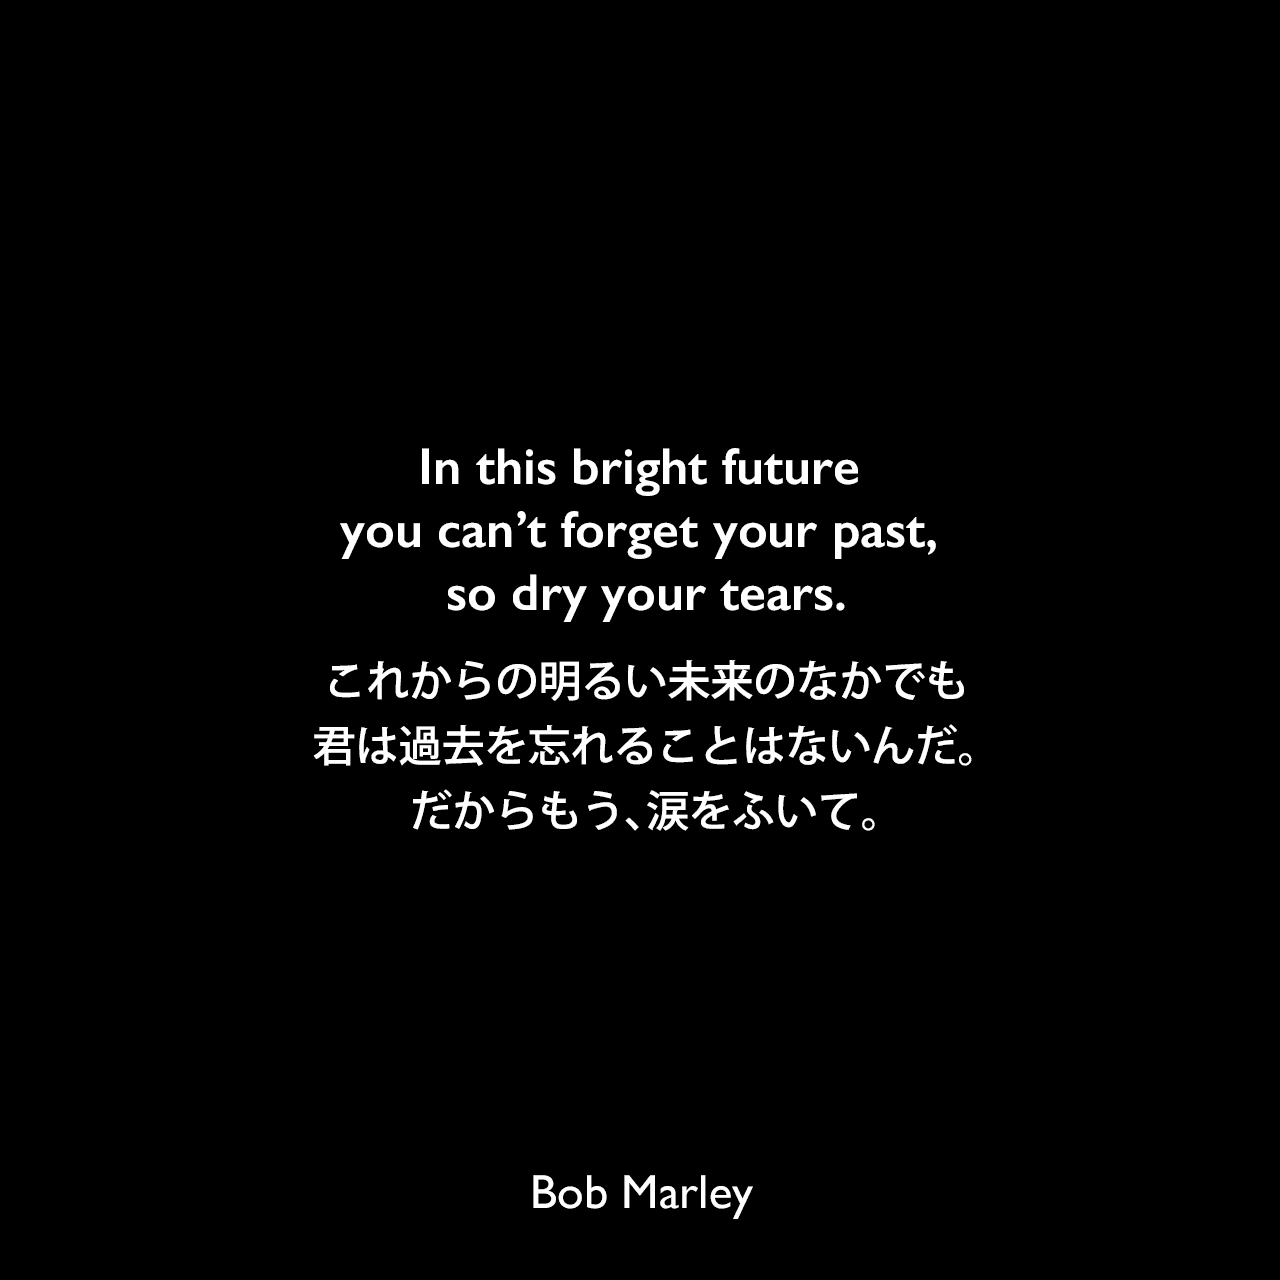 In this bright future you can't forget your past, so dry your tears.これからの明るい未来のなかでも、君は過去を忘れることはないんだ。だからもう、涙をふいて。Bob Marley